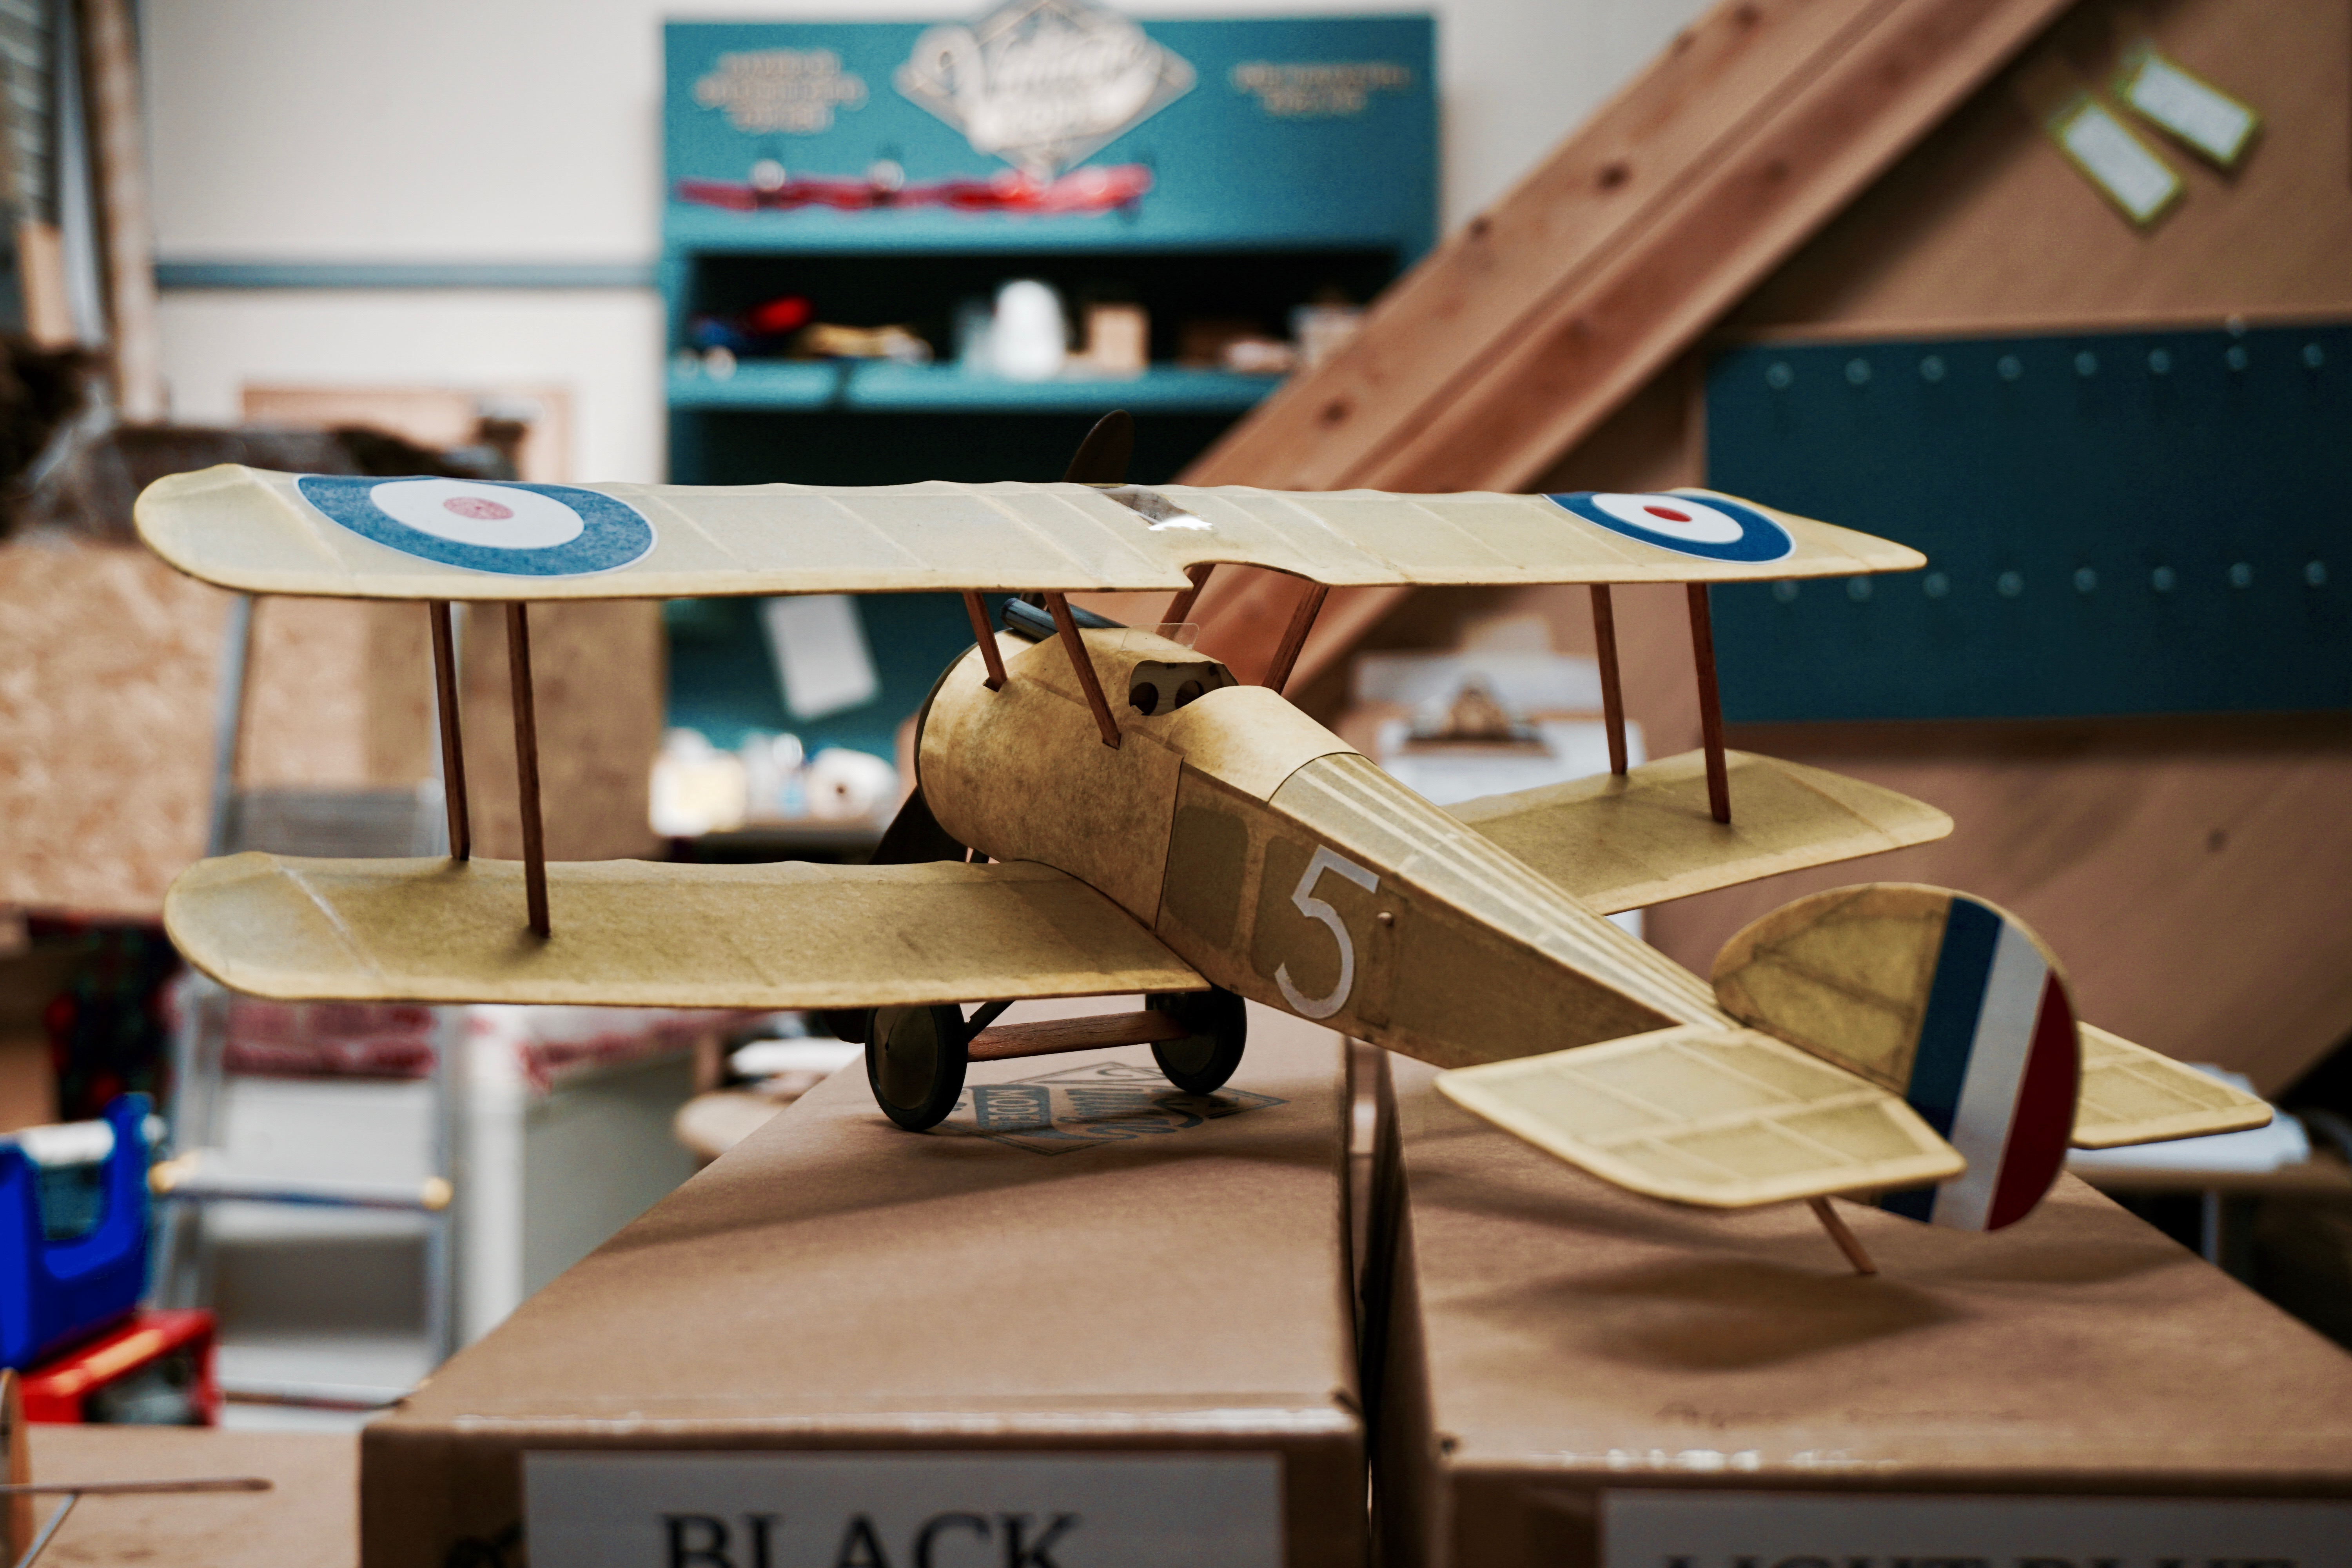 10 Tips For Building With Balsa Flite Test Of Beginners Guide To Connecting Your Rc Plane Electronic Parts Once Youre Finished One Model Pick Up Another Kit And Keep Going Before You Know It Youll Be A Master